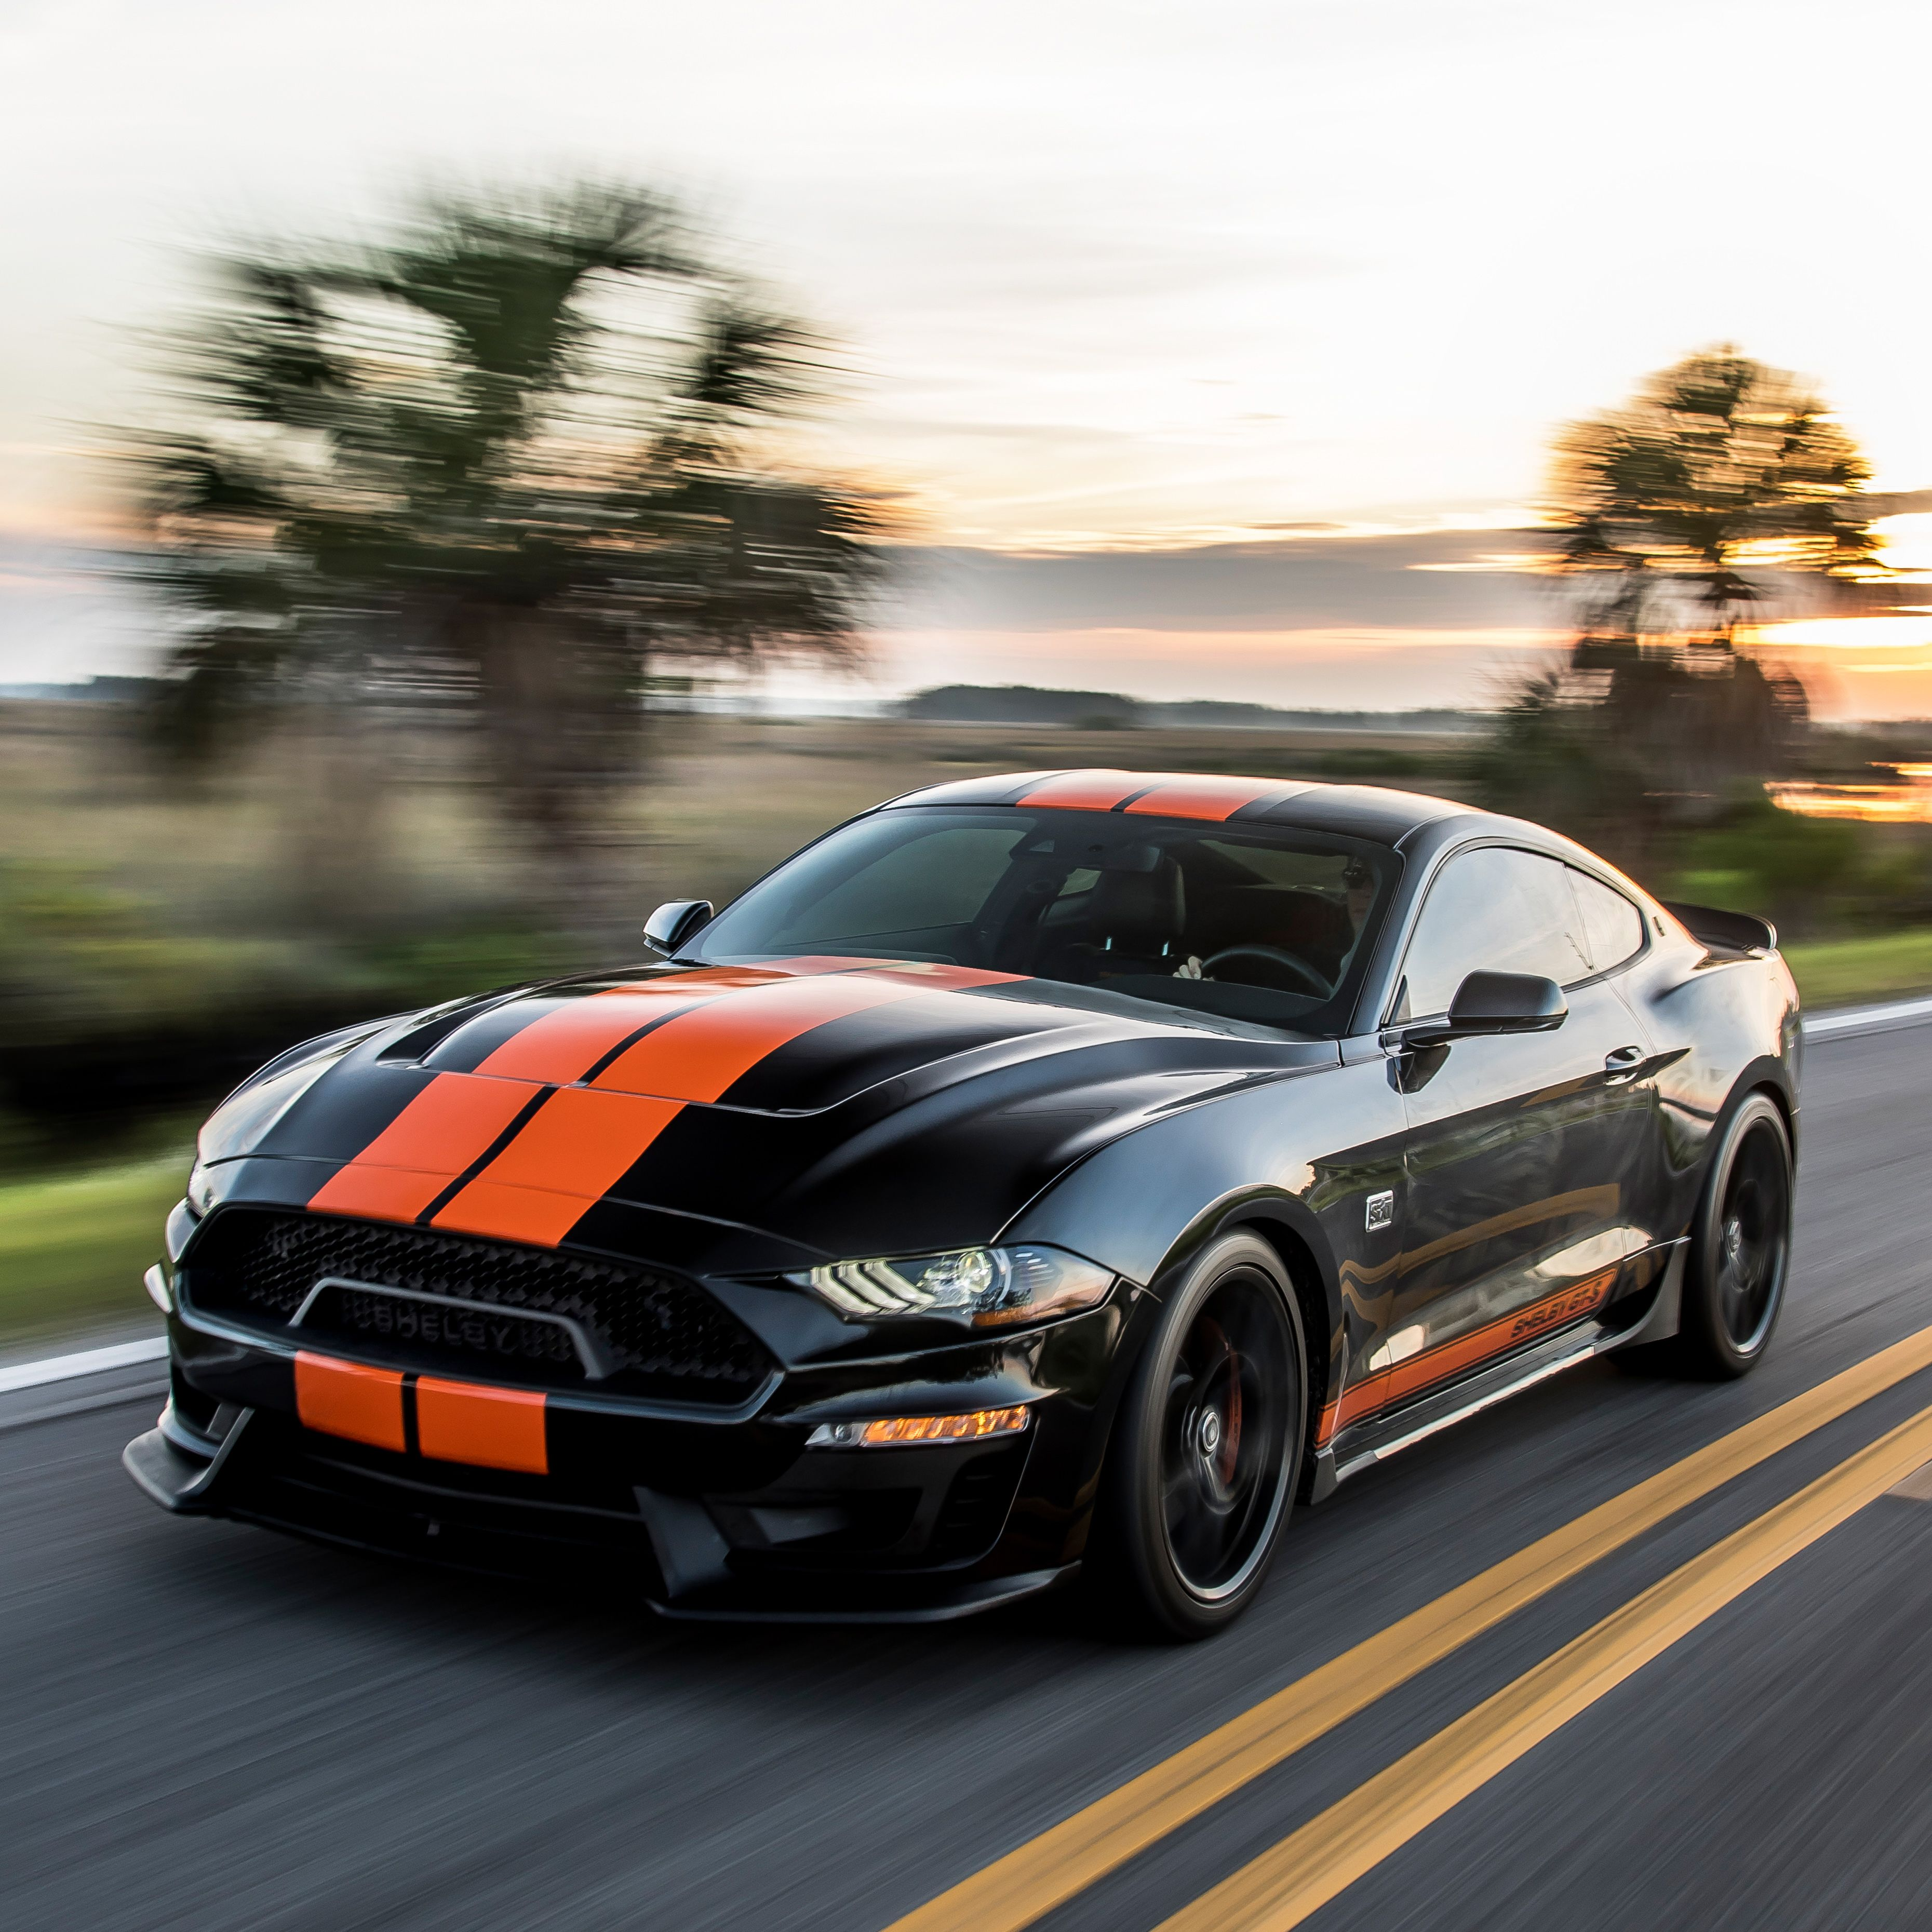 2019 Ford Mustang Shelby Gt S Is A Rental Car We Can Dig